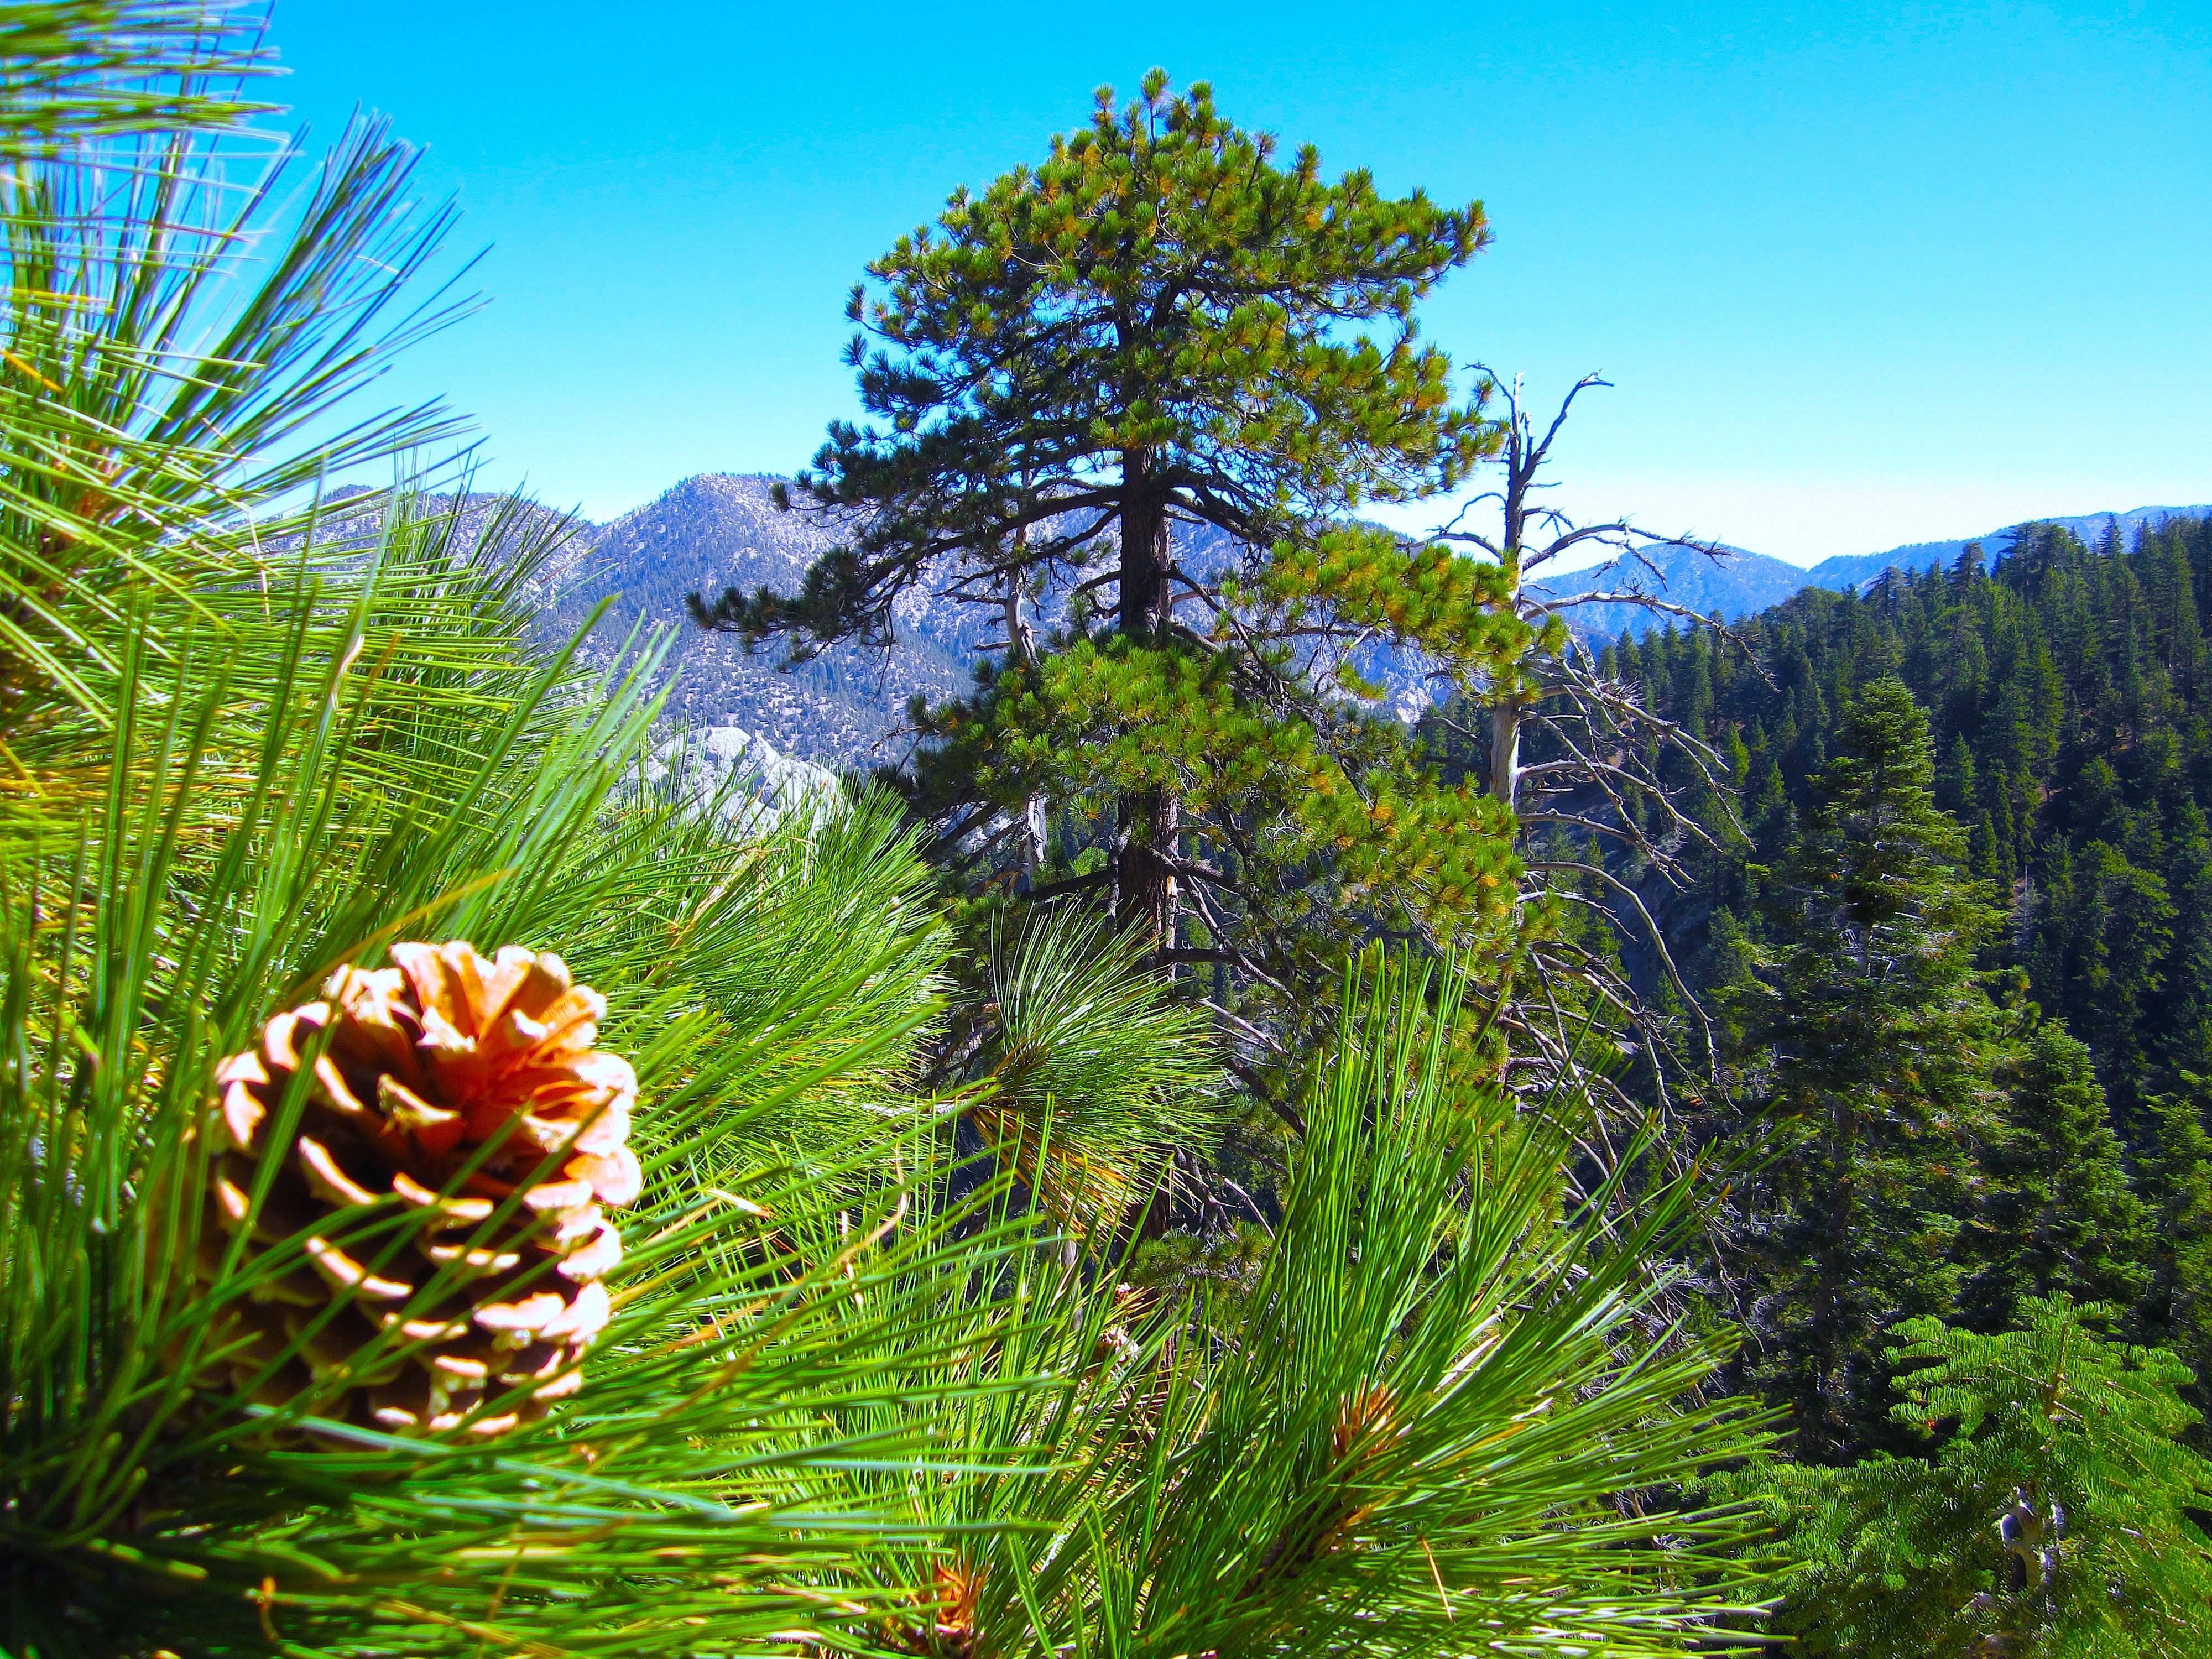 Pine cone and trees on a mountain side wallpaper - Pine tree wallpaper iphone ...